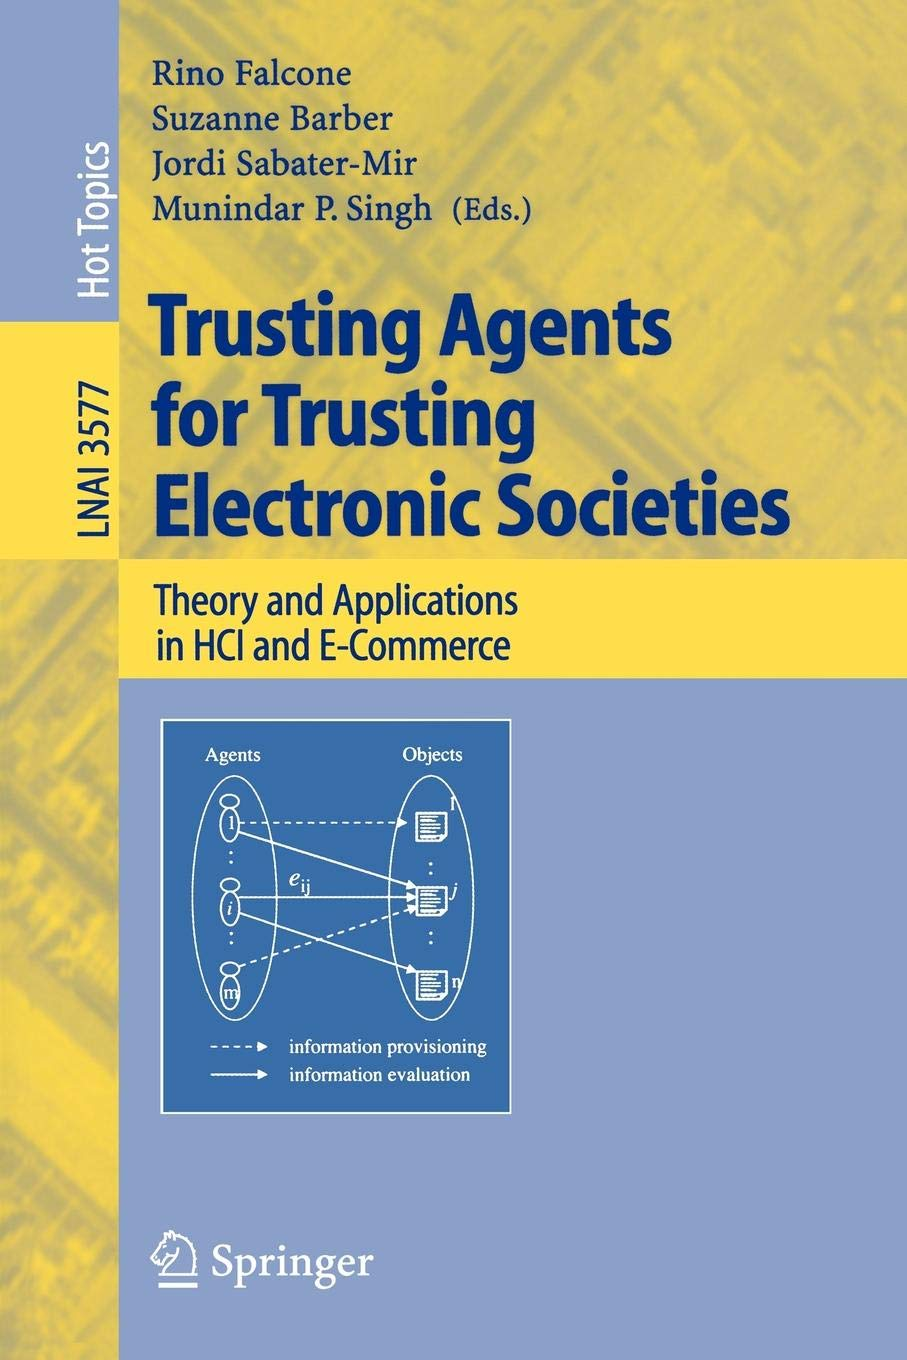 Trusting Agents for Trusting Electronic